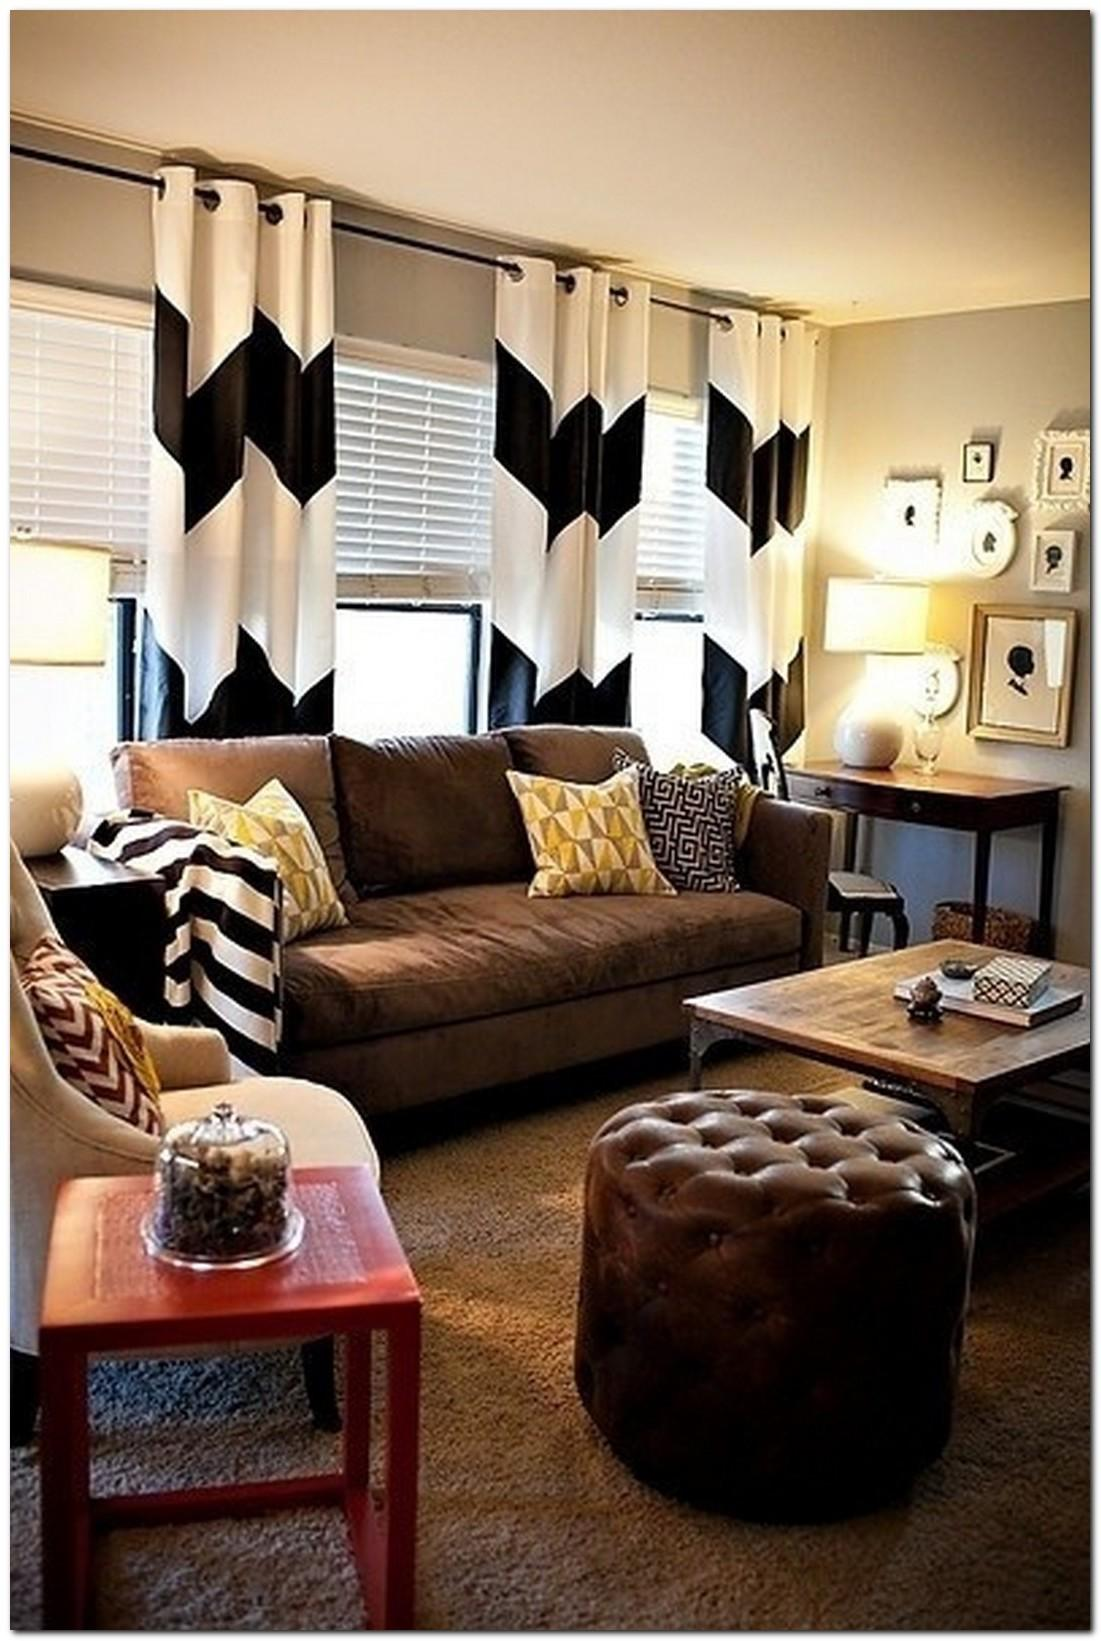 40 Cool Small Urban Apartment Decorating Ideas That You Can Make In No Time Stunning Photos Decoratorist